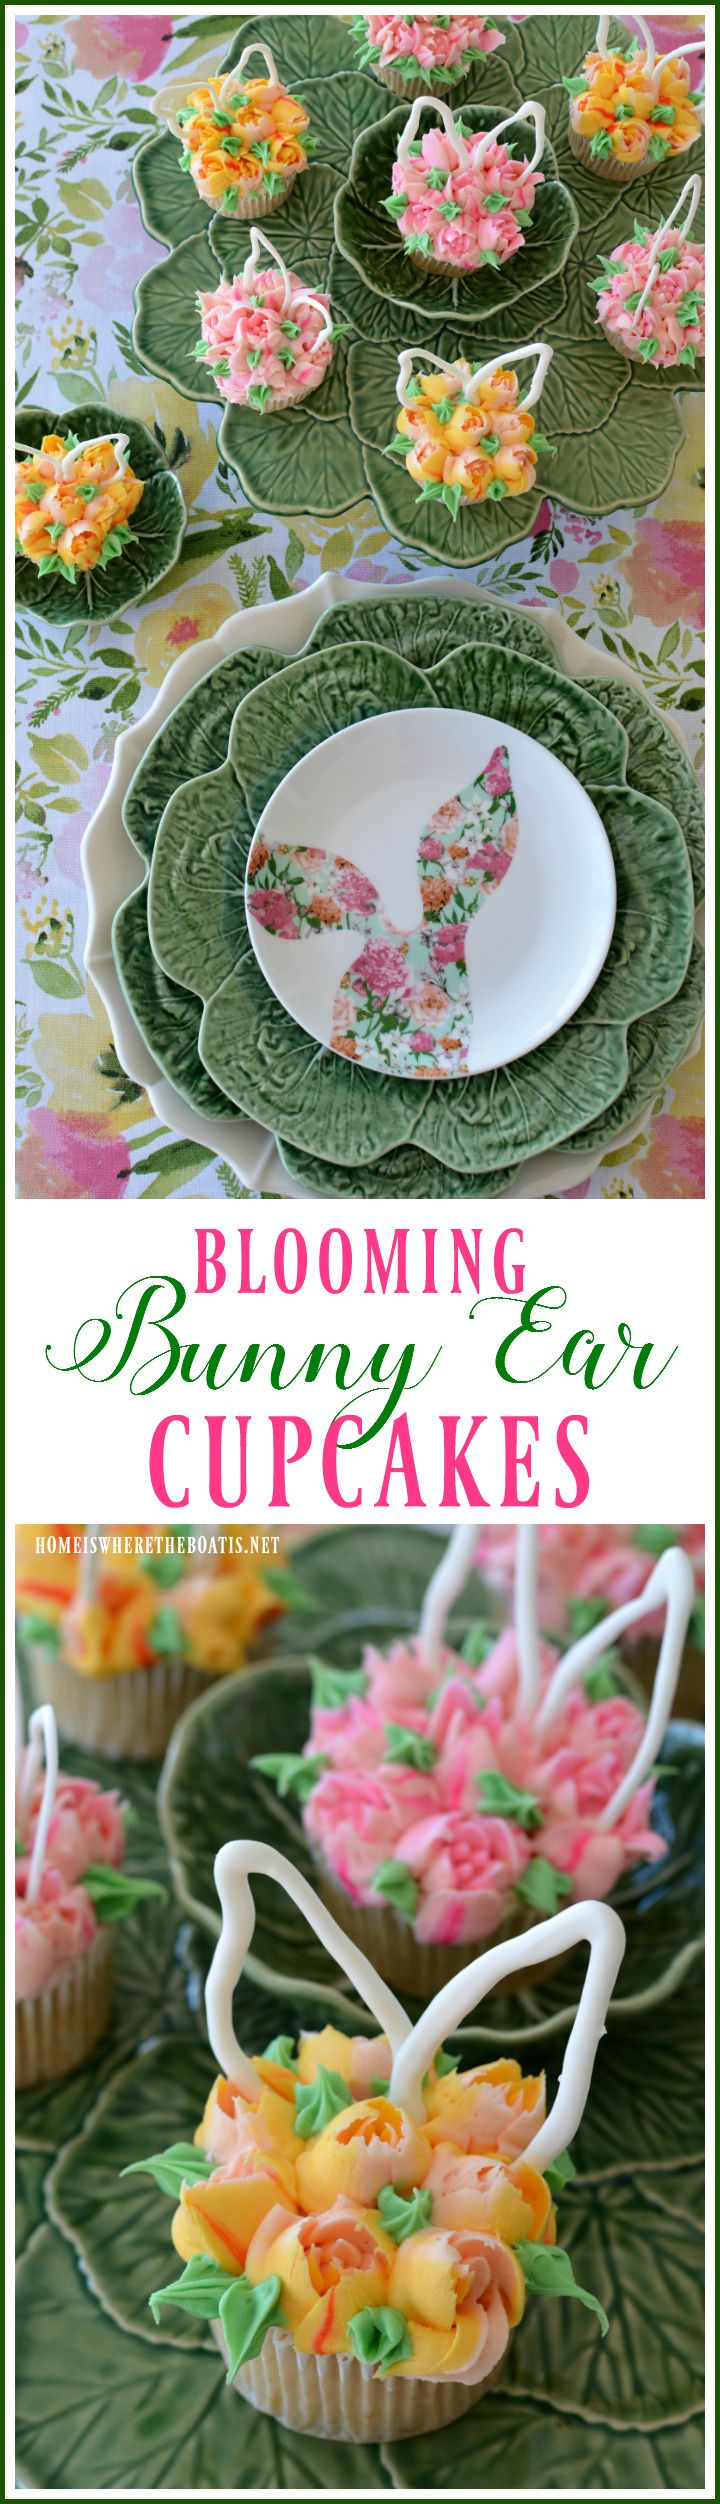 Blooming Bunny Ear Cupcakes | homeiswheretheboatis.net #Easter